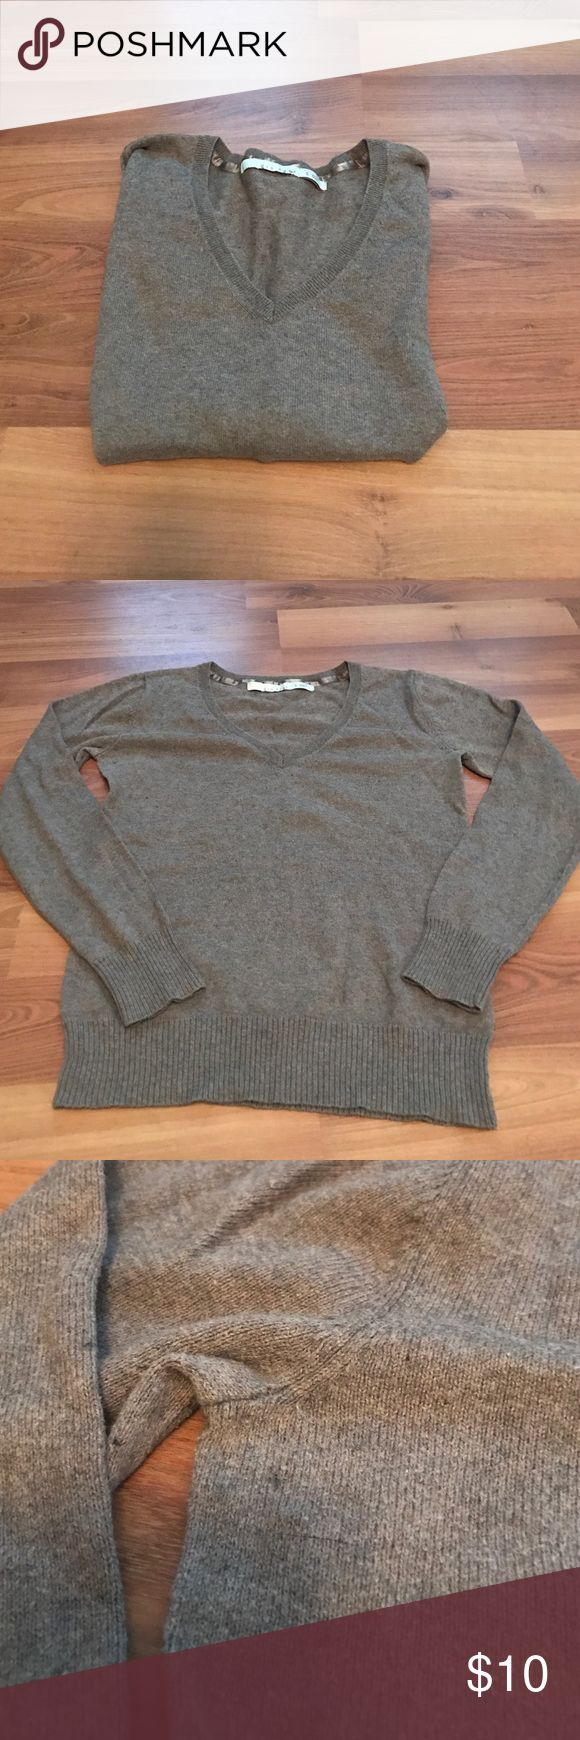 Old Navy V-neck brown sweater Old Navy V-neck brown sweater size small lightly worn but still in great condition Sweaters V-Necks